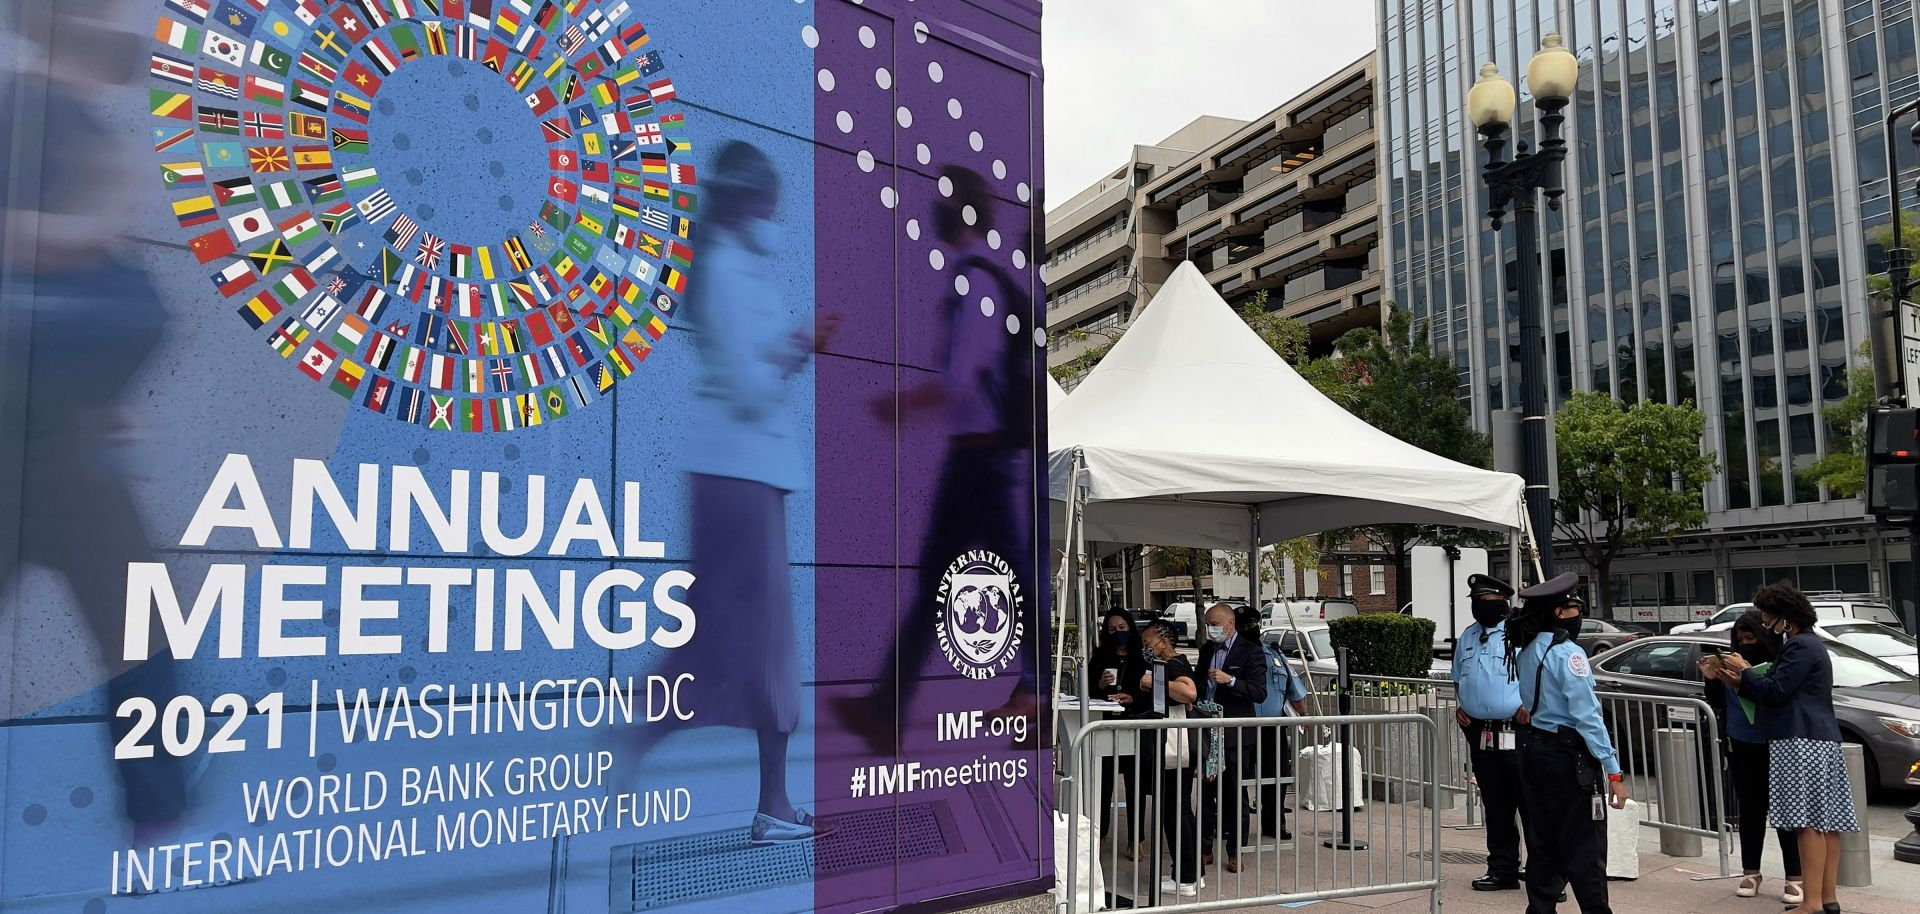 People wait outside the entrance to the annual meetings of the World Bank and International Monetary Fund (IMF) outside the IMF headquarters in Washington D.C. on Oct. 11, 2021.